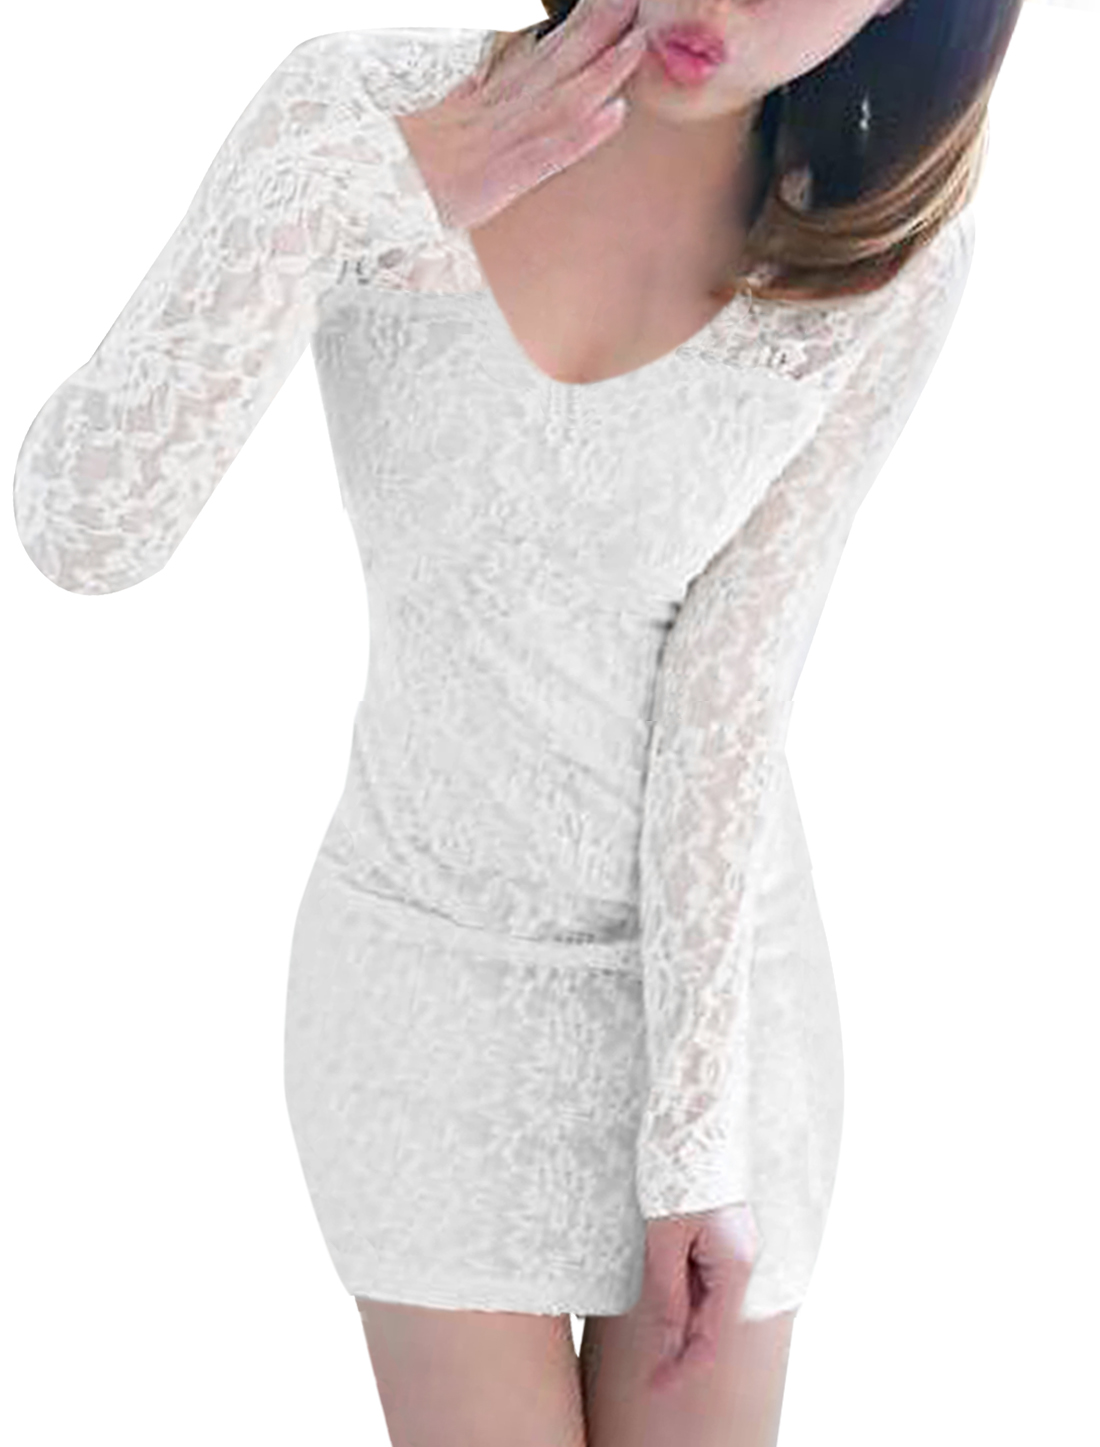 Ladies Pure White Color All Over Crochet Lace Design Mini Dress M